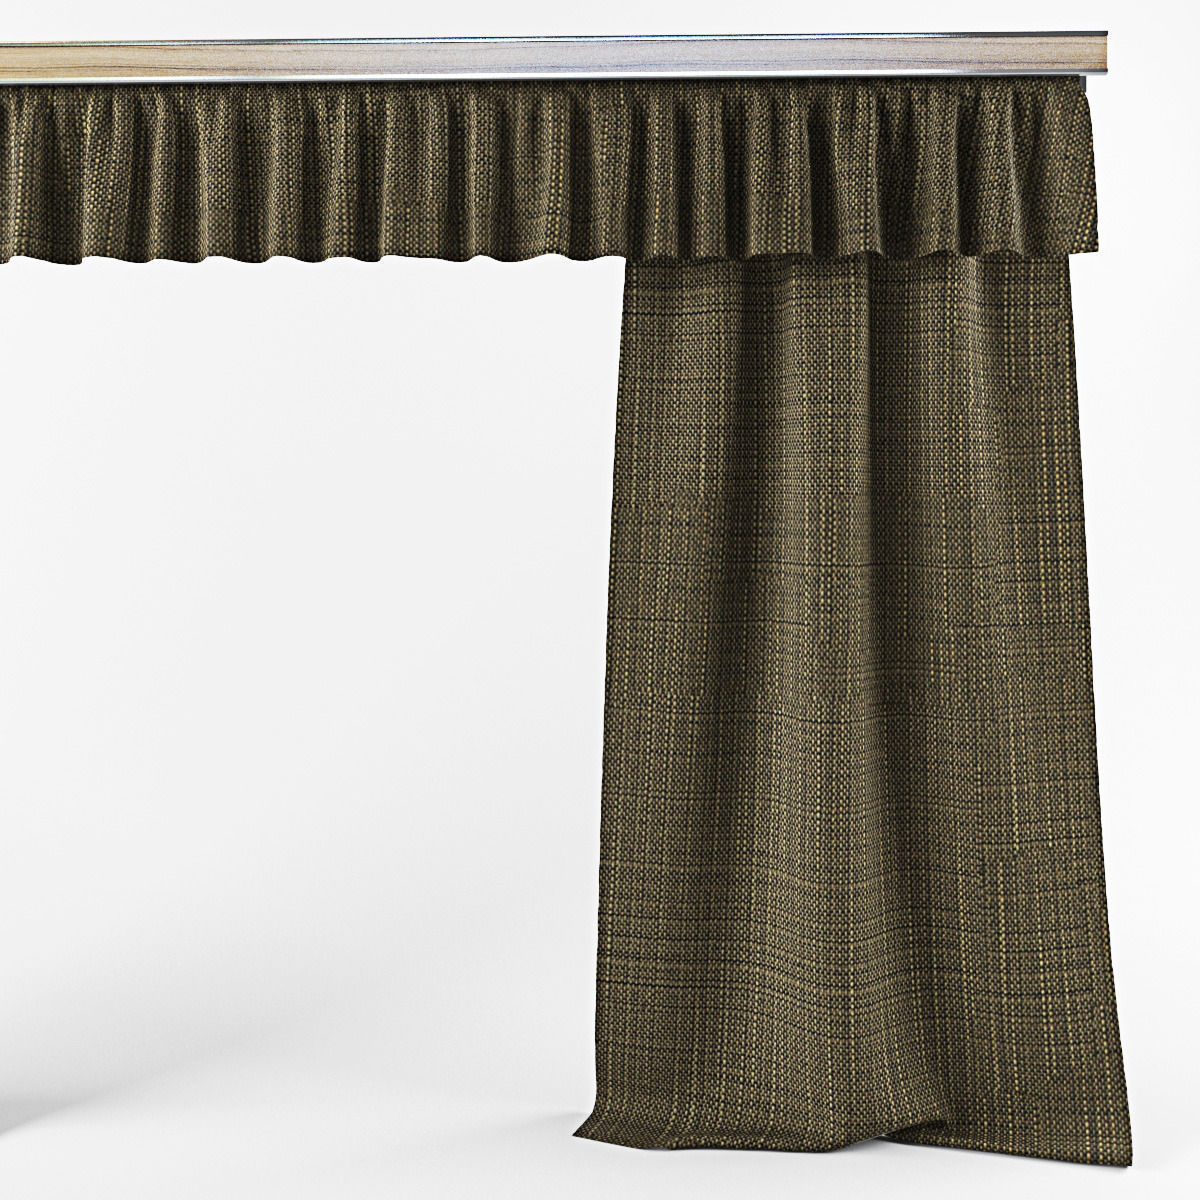 sew diy ish curtains let stuff updated if make can you lines easy straight these five ikea s simple tutorial hey